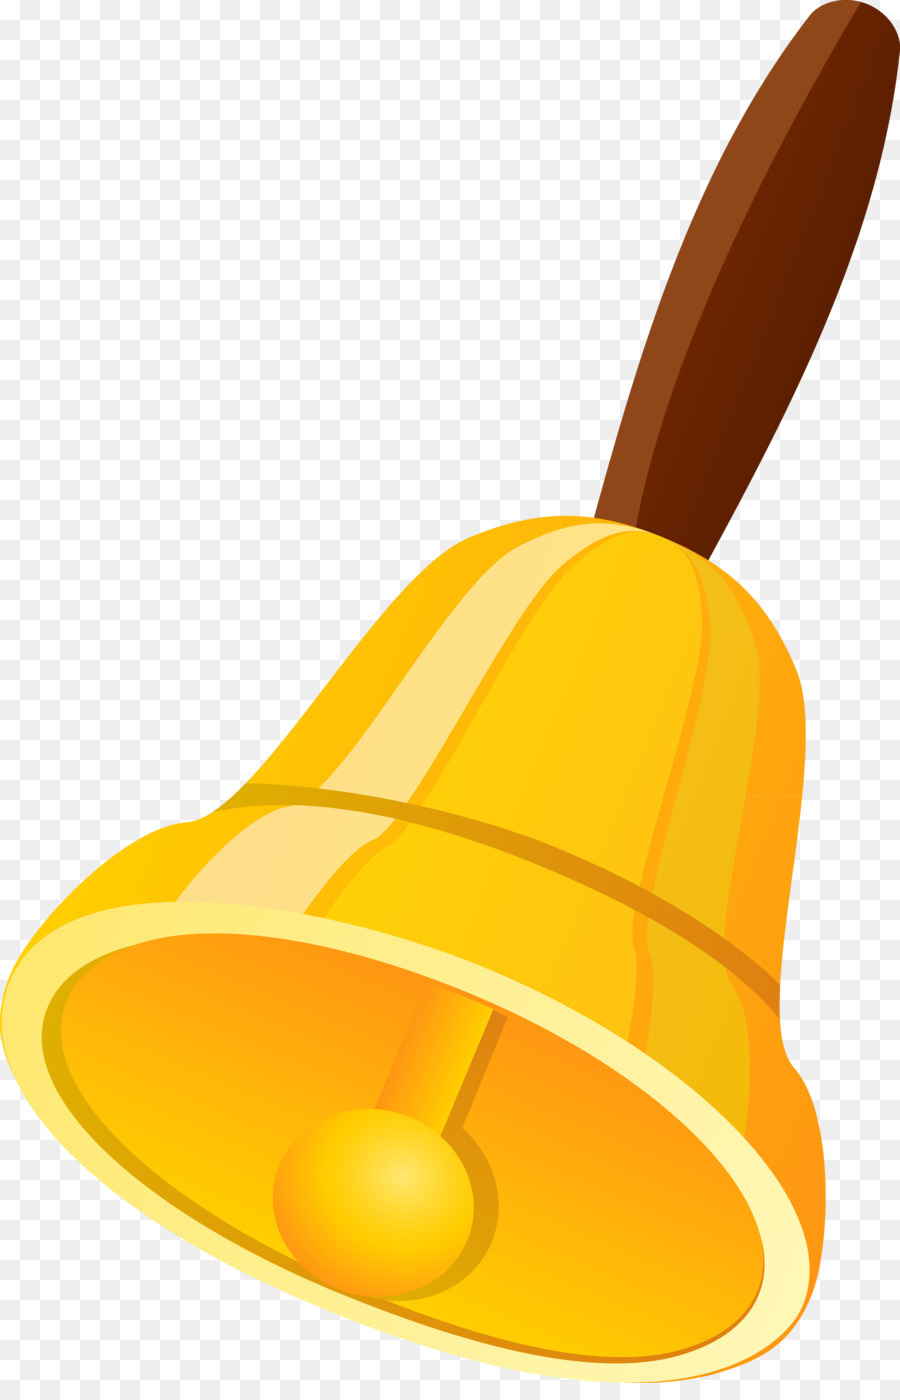 image freeuse library School yellow product line. Bell clipart.